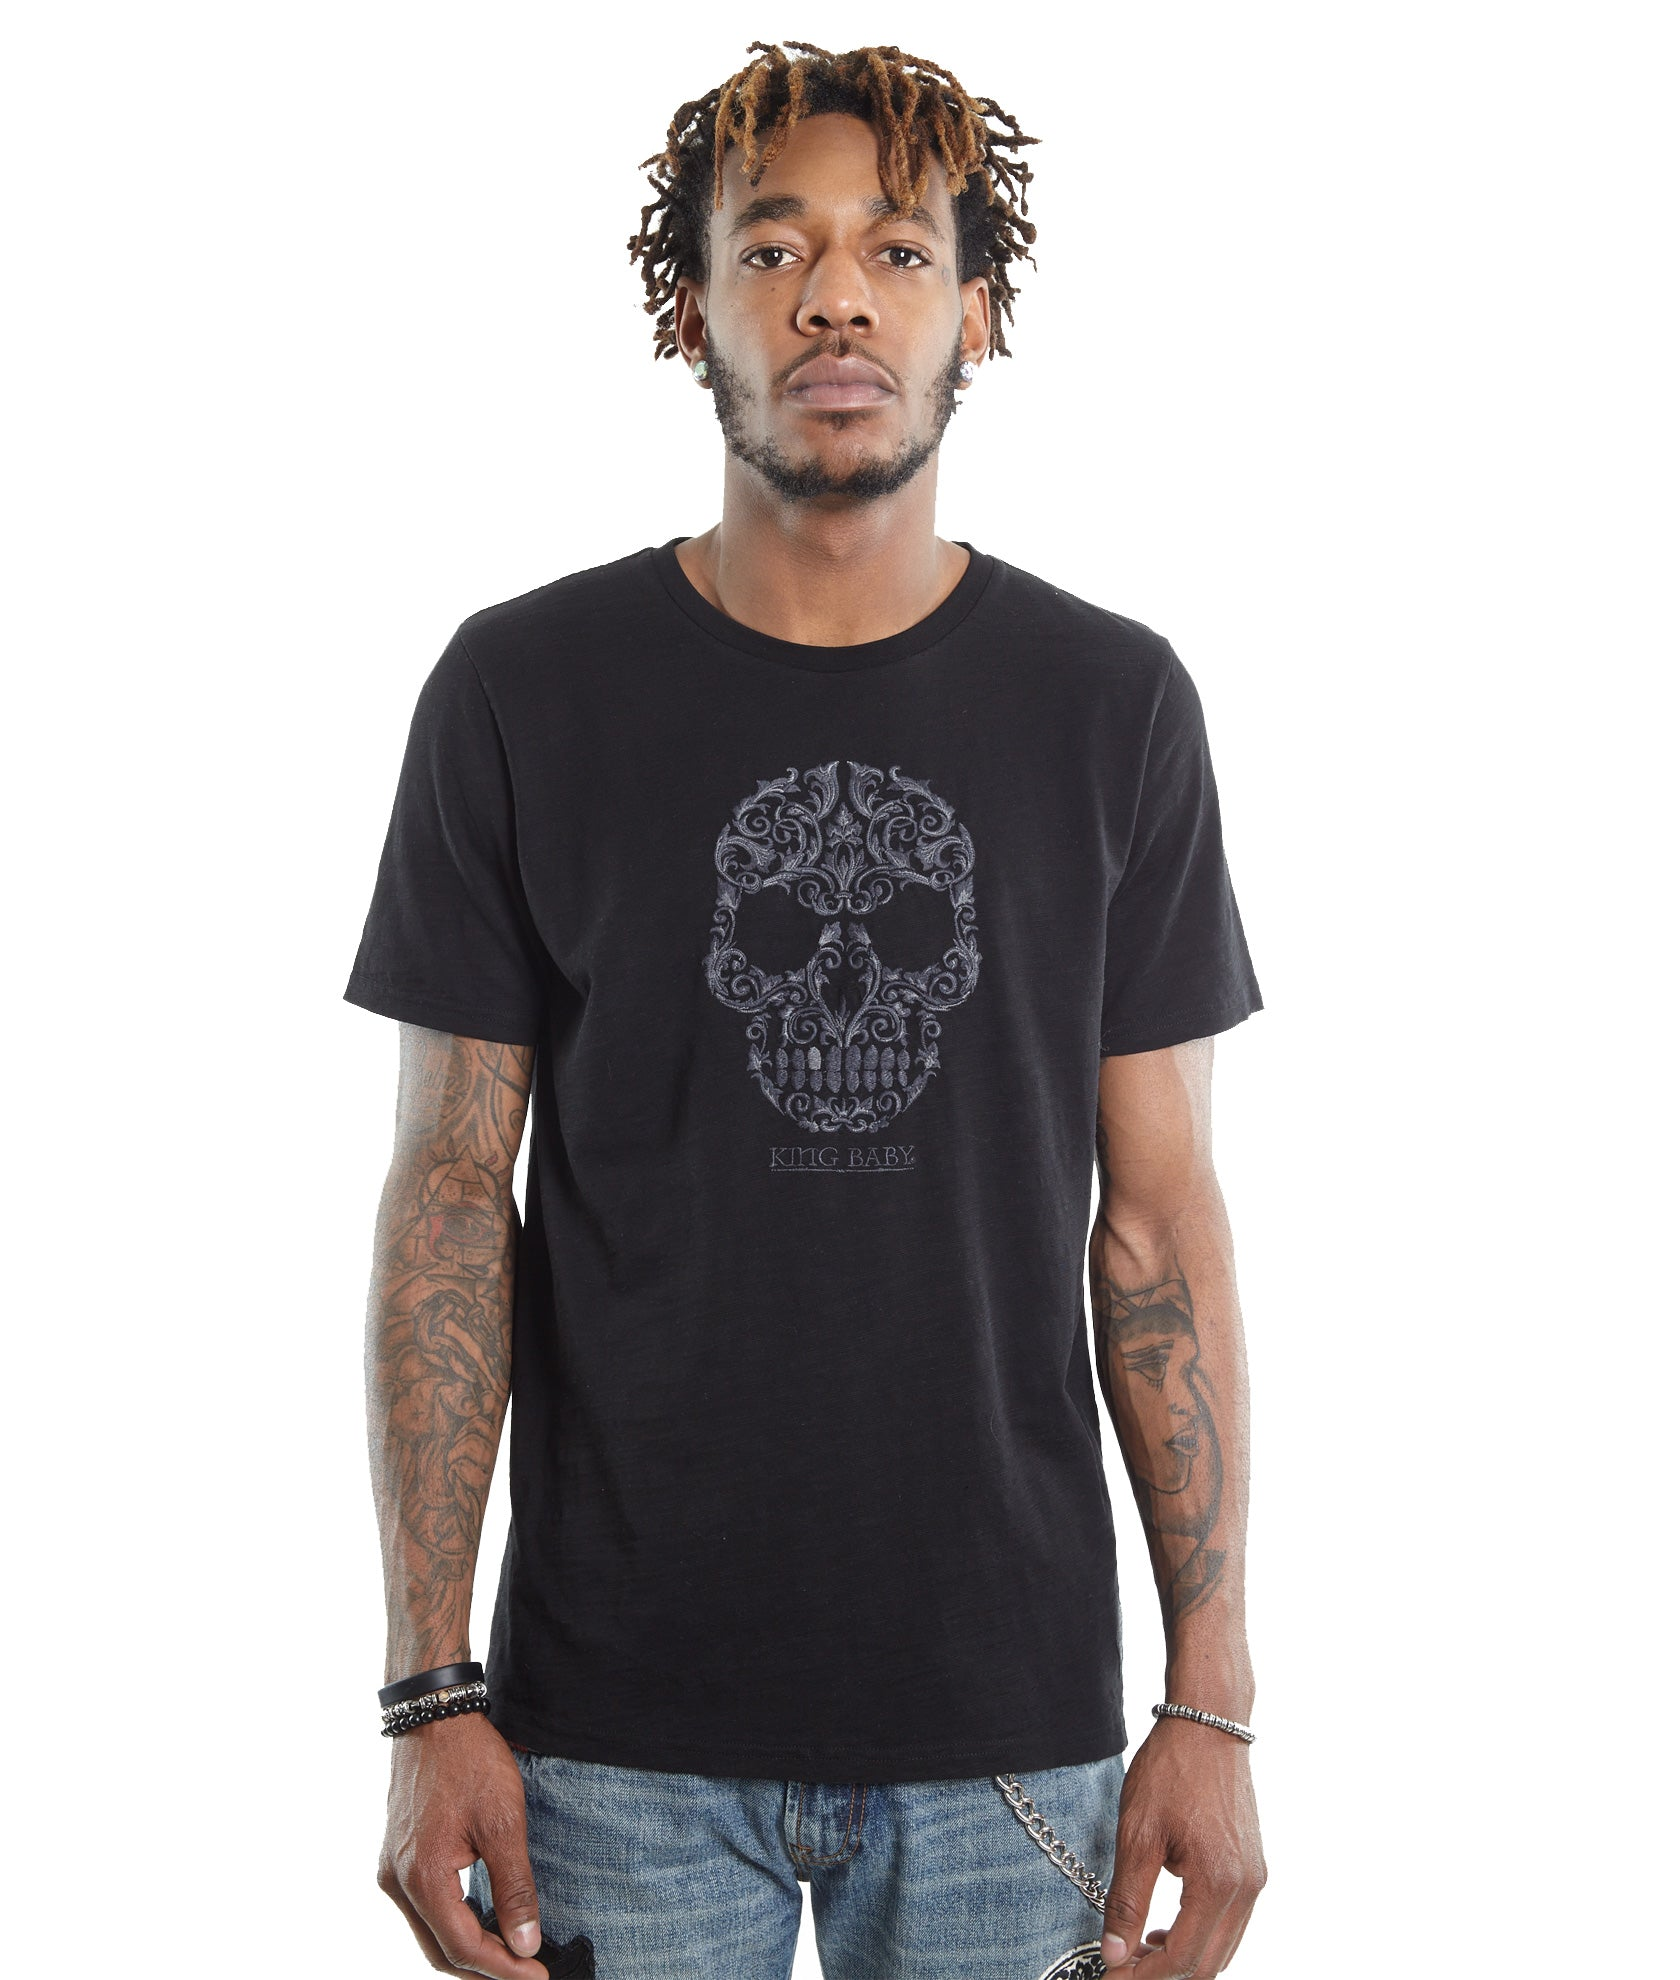 Cult of IndividualityMen's Skull Embroidered King Baby Crew Neck Black T Shirt3XL